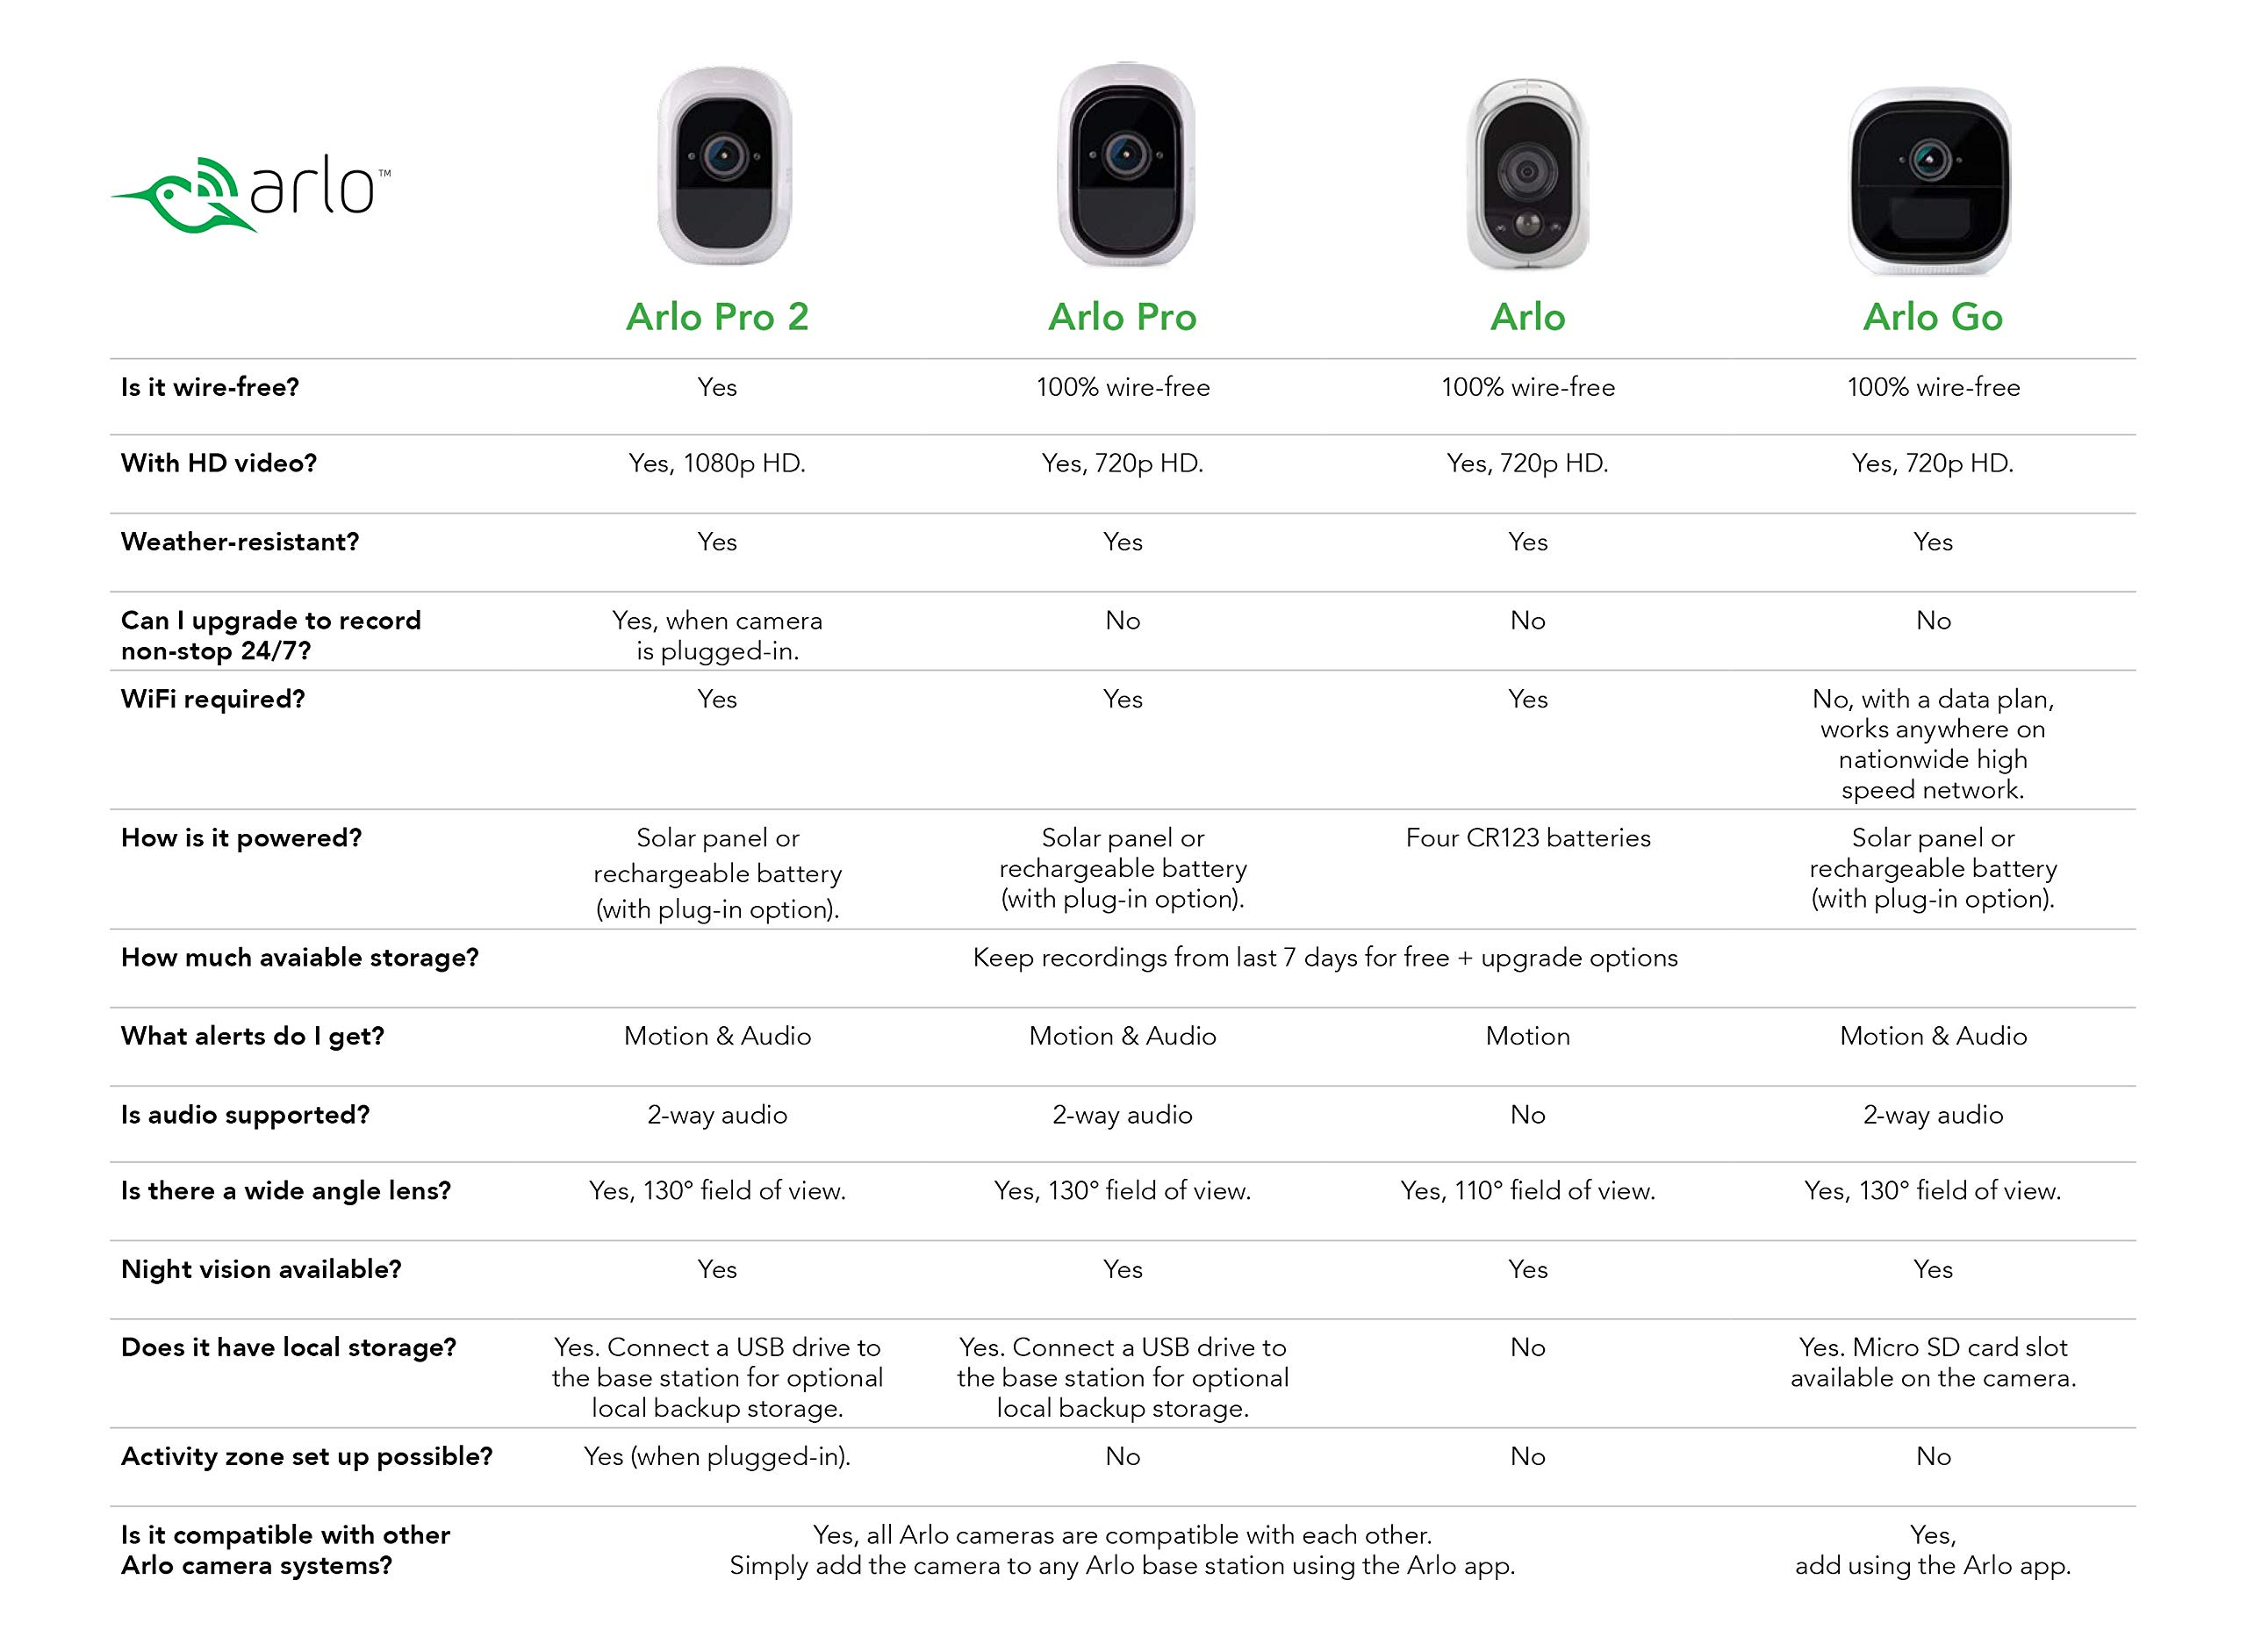 Arlo Go - Mobile HD Security Camera with Data Plan | LTE Connectivity, Night Vision, Local Storage (SD card), Weatherproof | Not compatible with Verizon Wireless or AT&T by Arlo Technologies, Inc